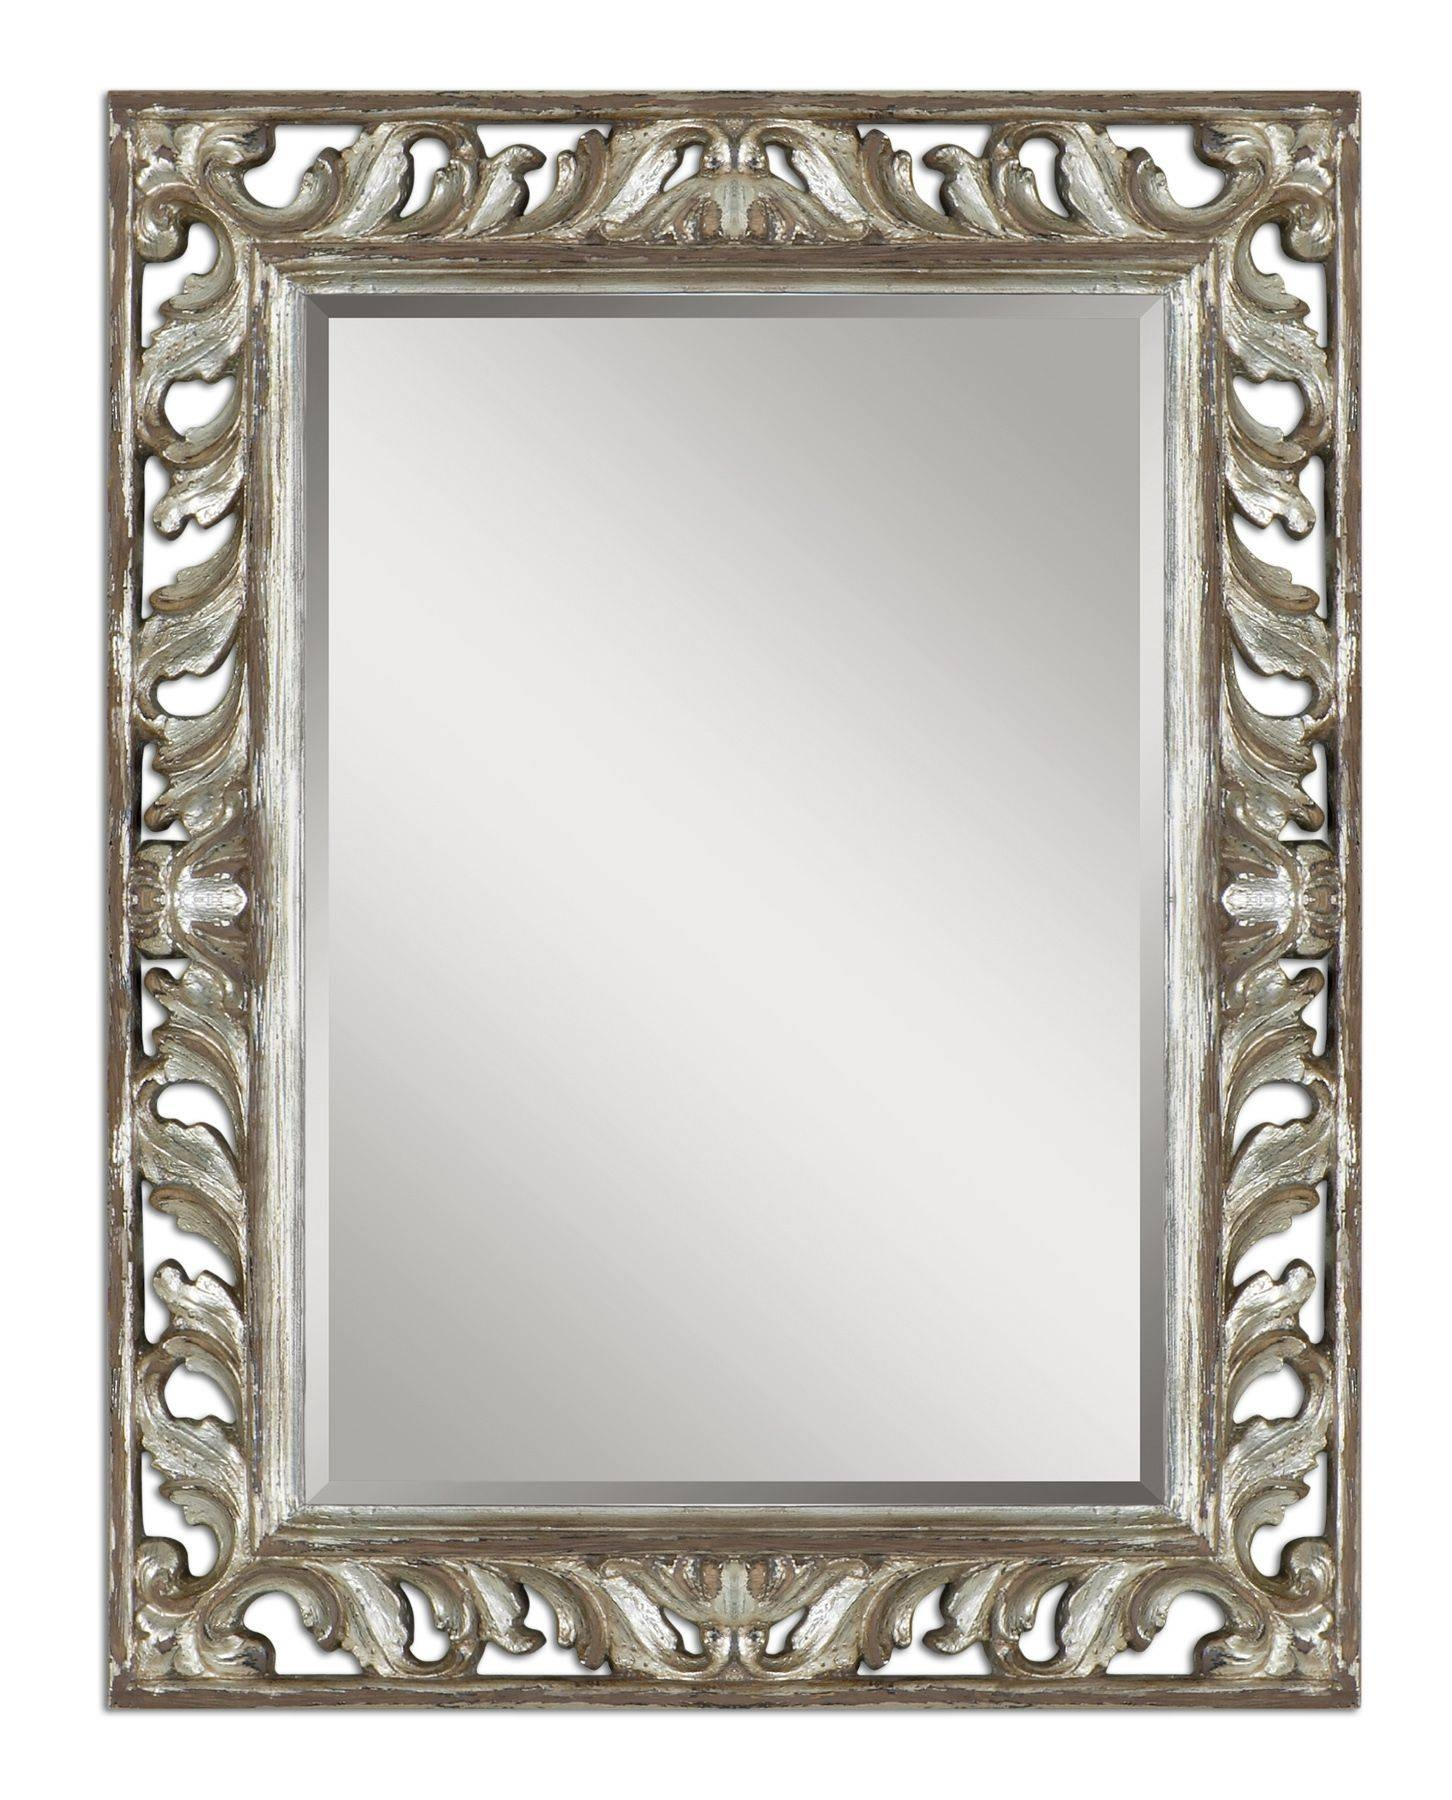 Mirrors You Won't Take Your Eyes Off Of – In Decors Regarding Silver Mirrors (View 12 of 25)